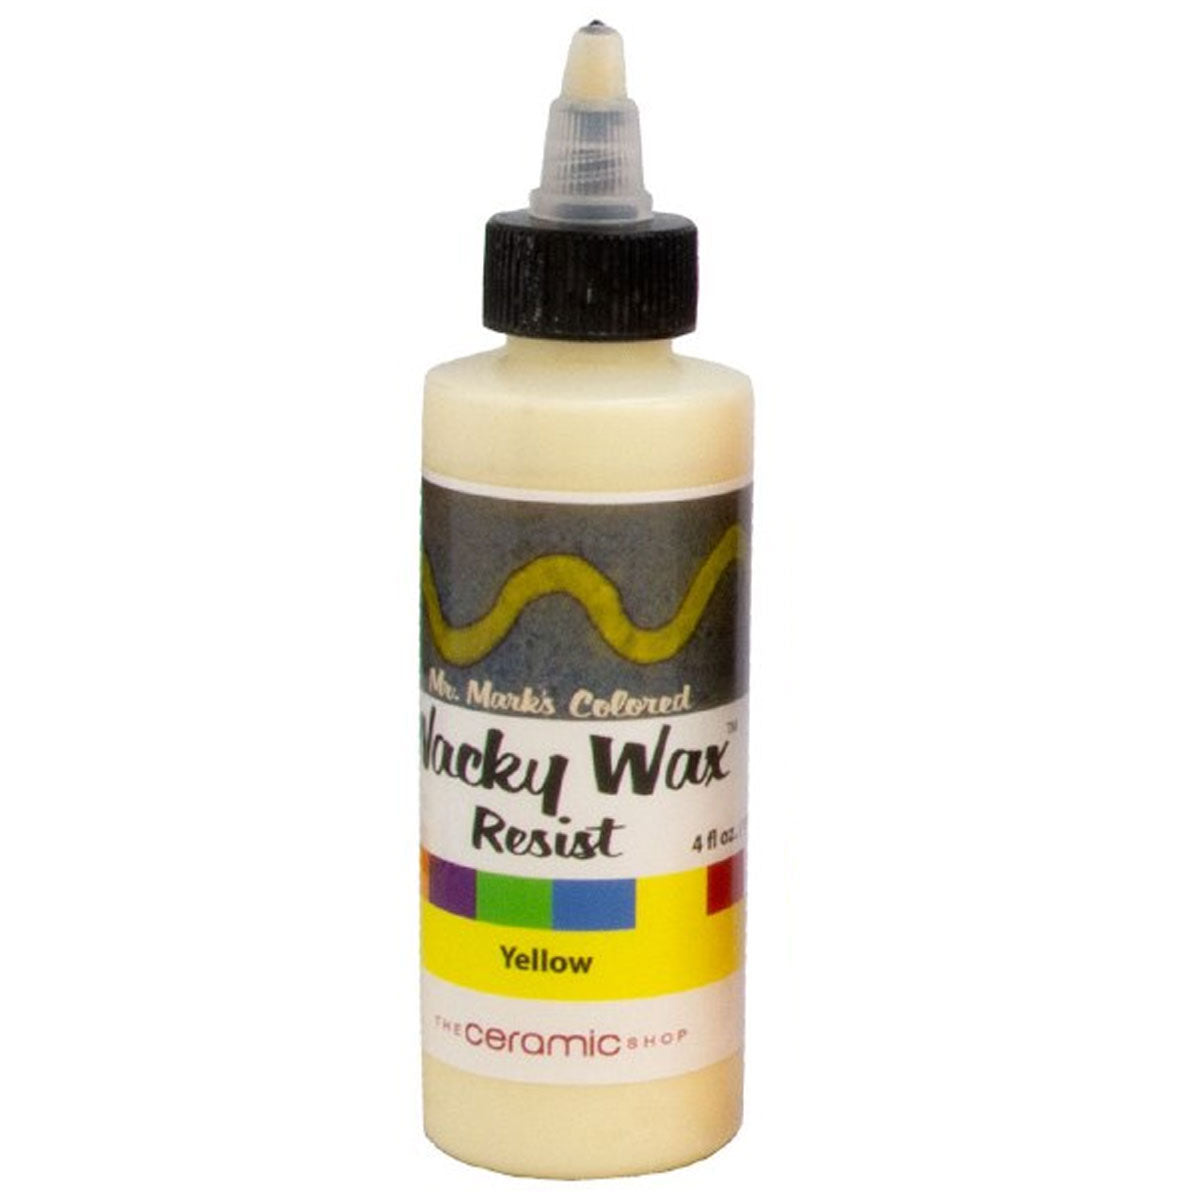 Wacky Wax Resist Yellow, 4 oz